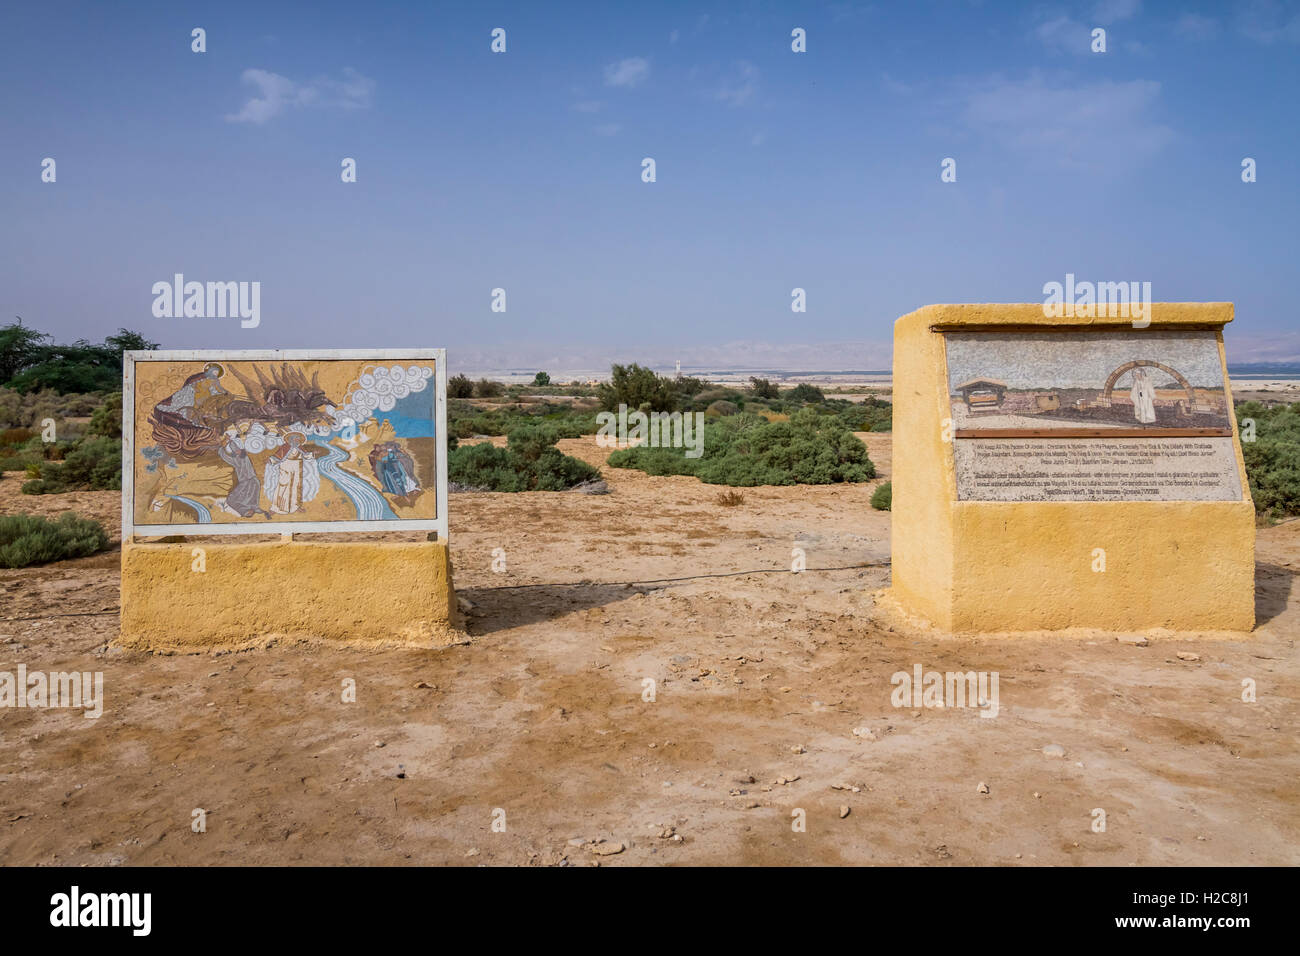 A monument to the 2000 Pope's visit at Bethany, Jordan River, Hashemite Kingdom of Jordan, Middle East. - Stock Image